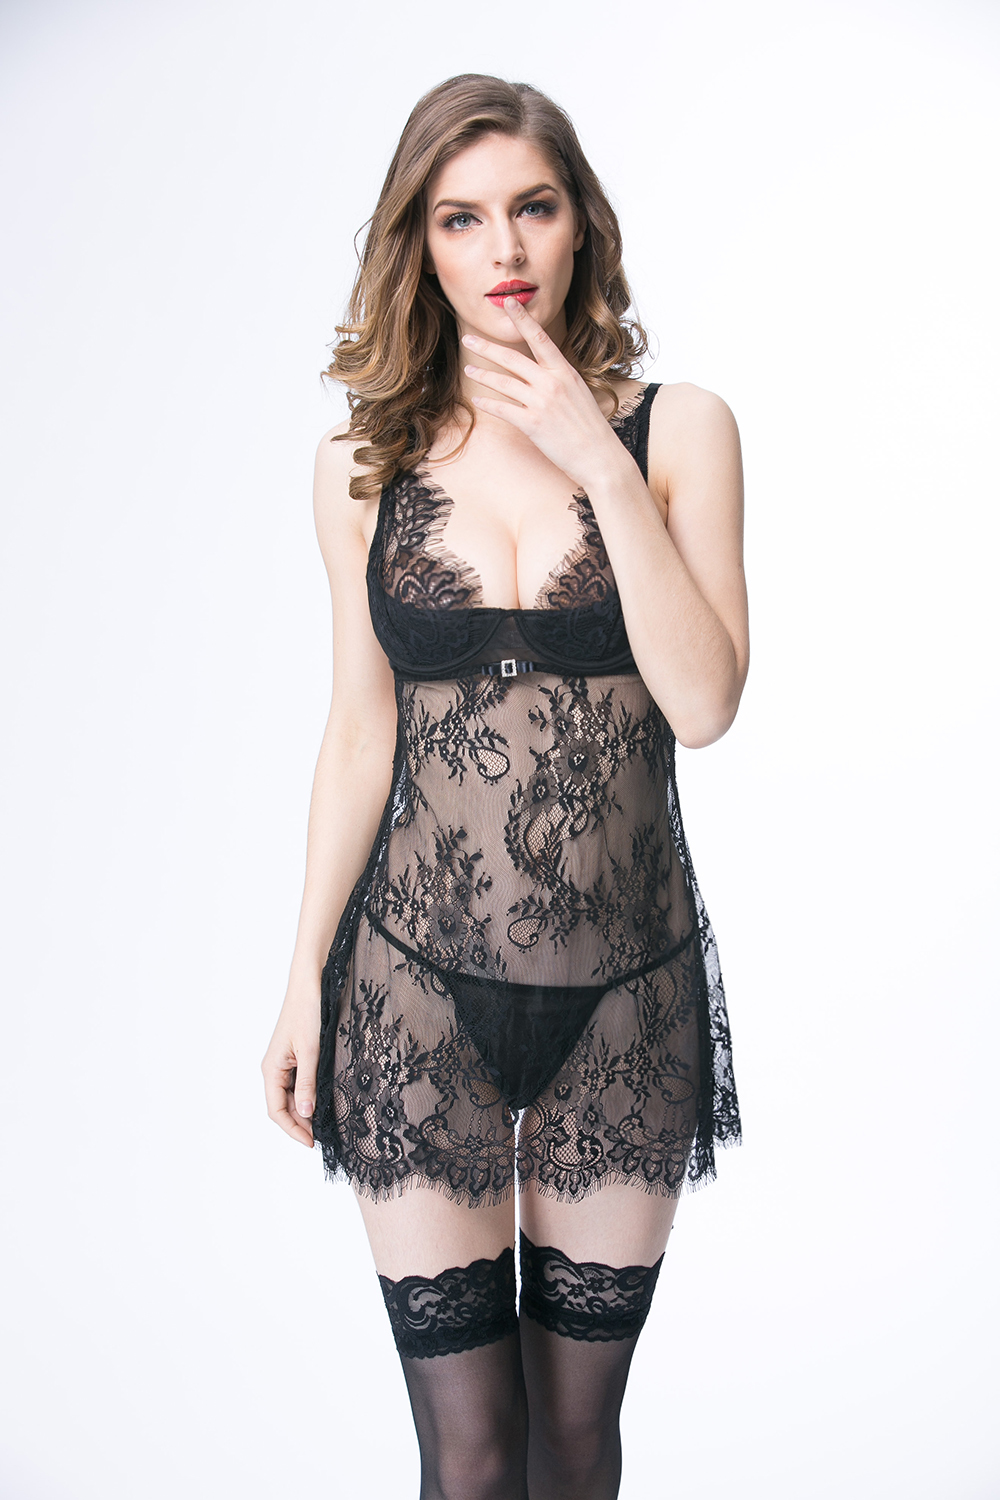 Lace erotic transparent showing adult lingerie sexy erotic Lace Mesh Robe Transparent Hot Lady Sexy Nightwear Sleep EB658